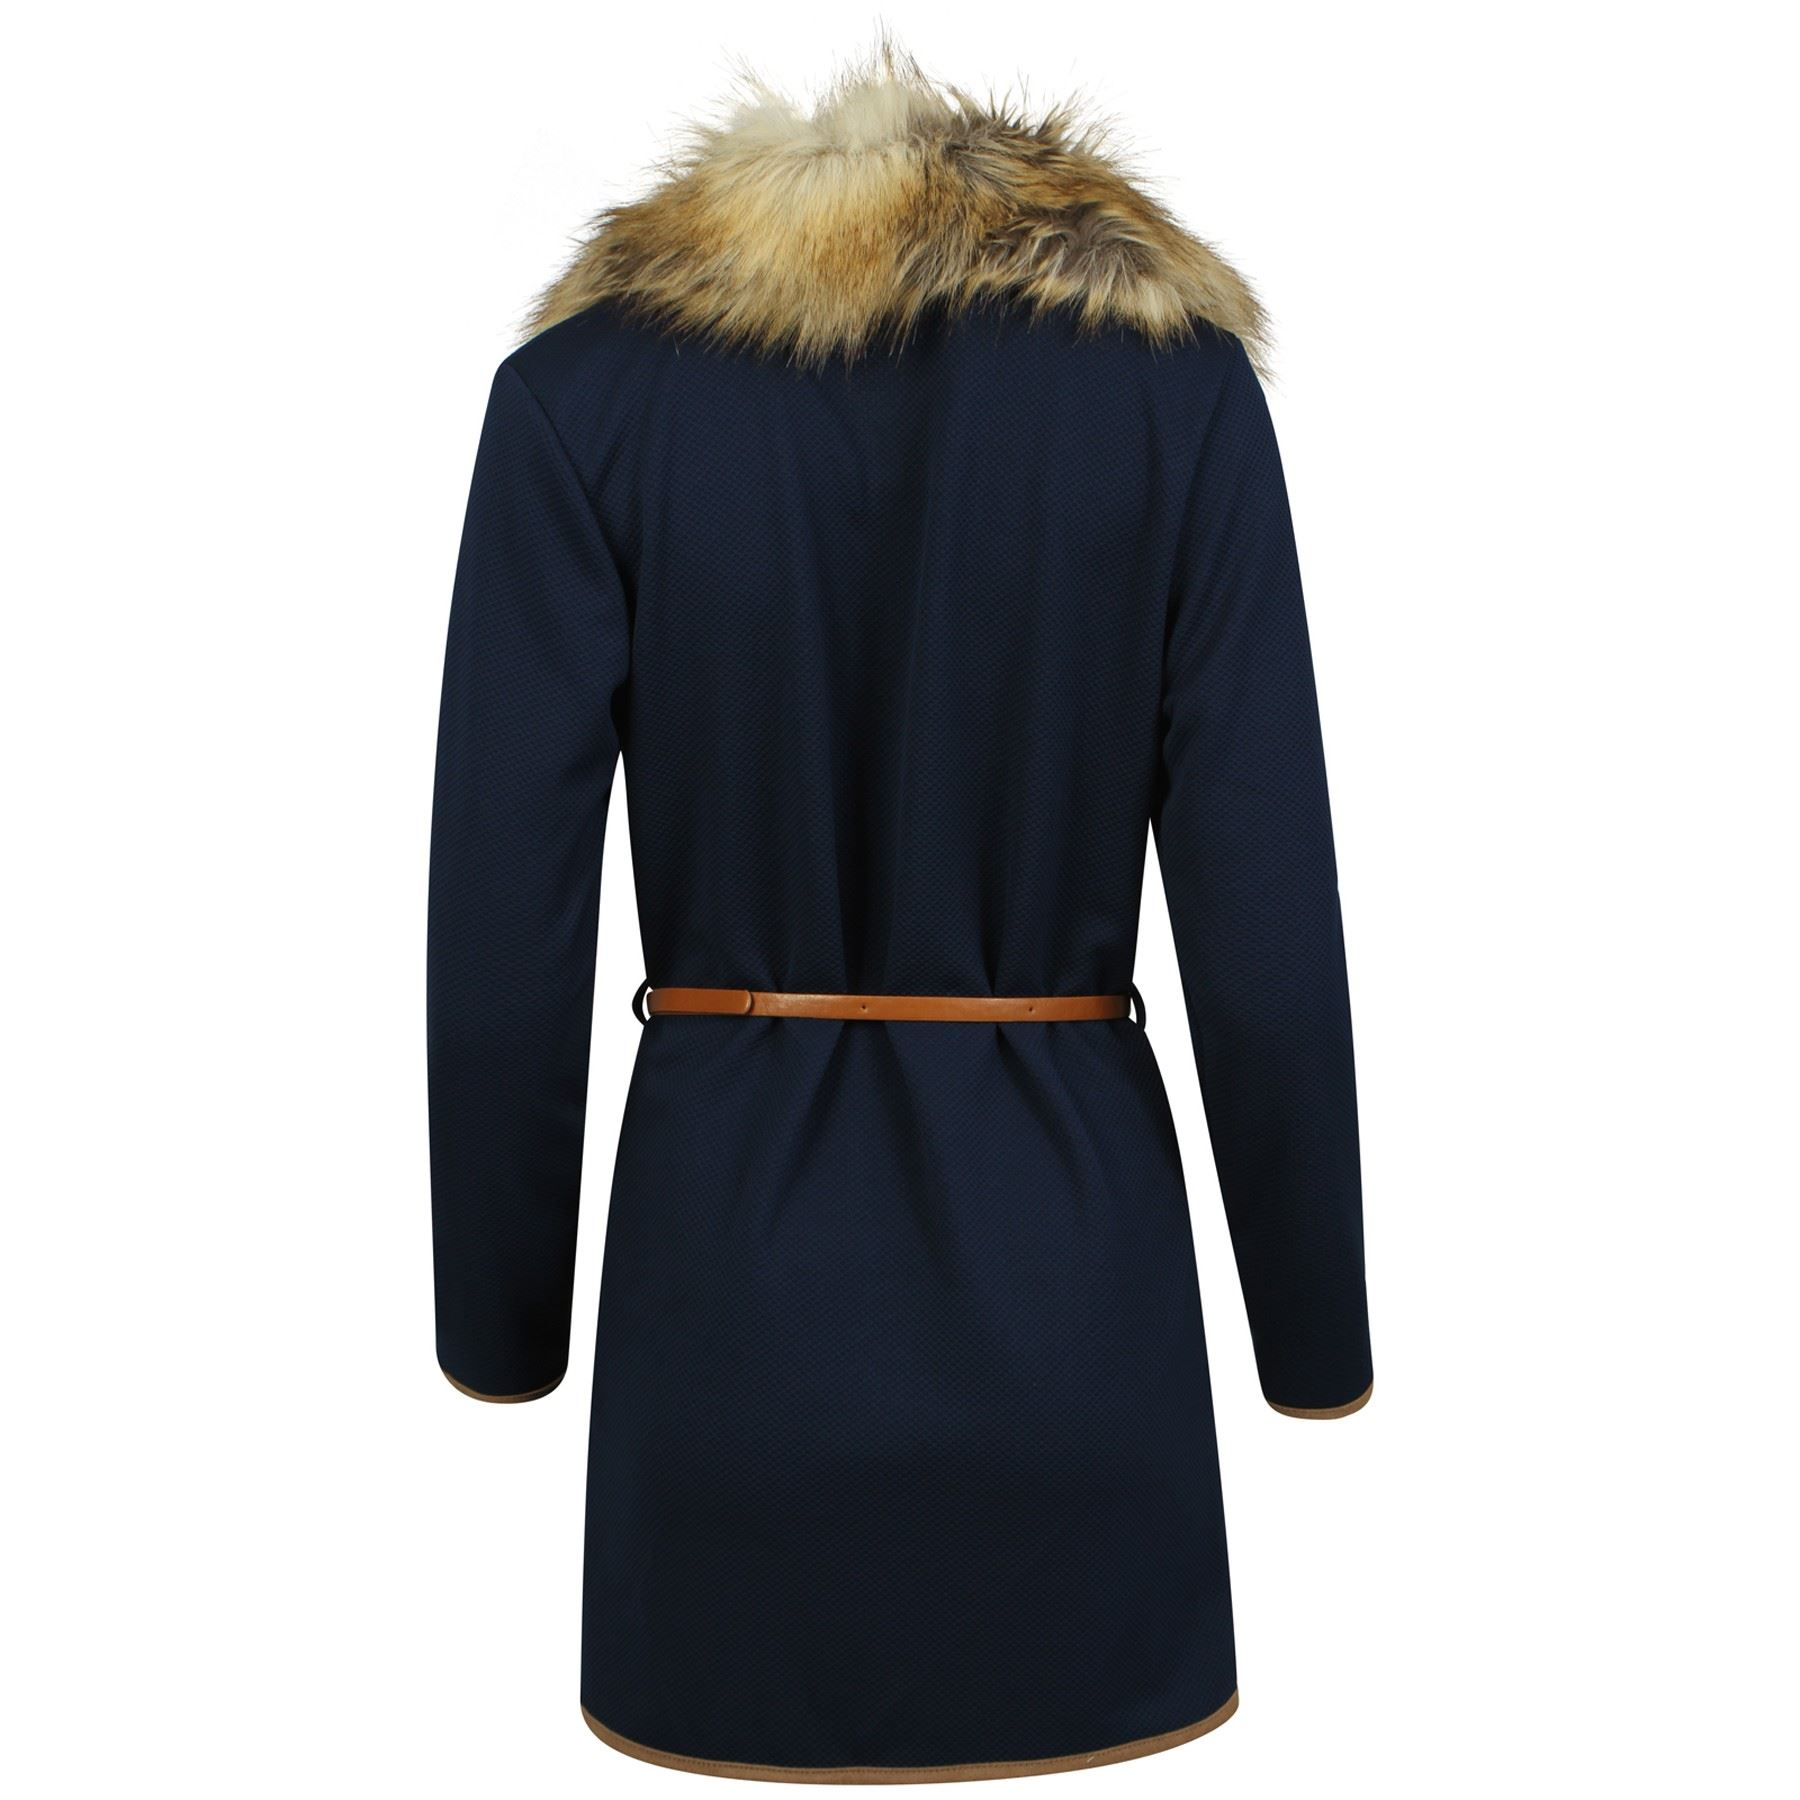 Womens evening coats